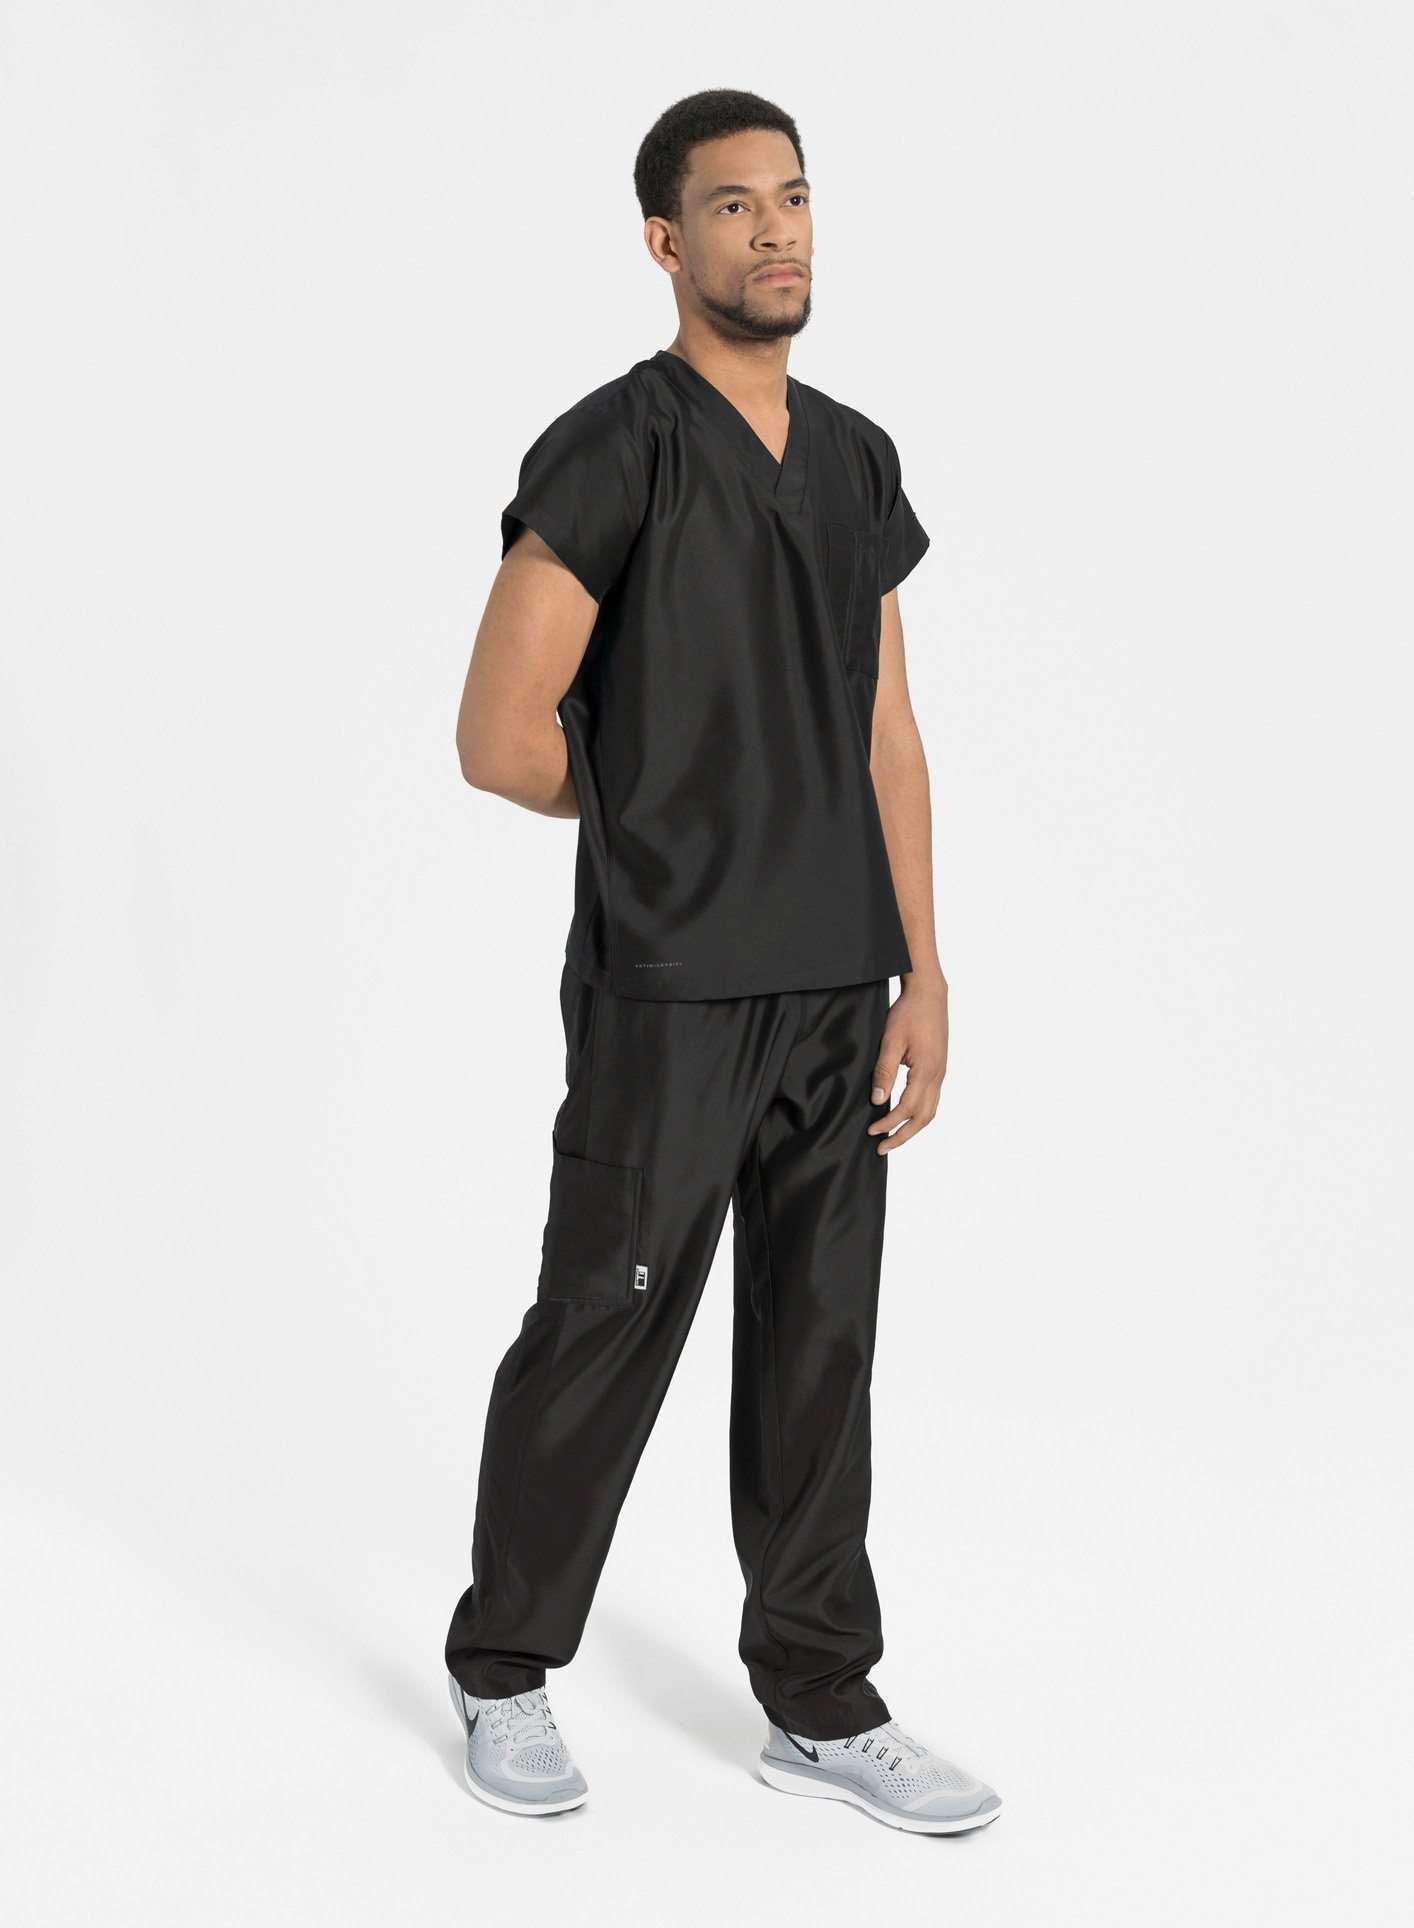 mens Elements short sleeve classic one pocket scrub top black